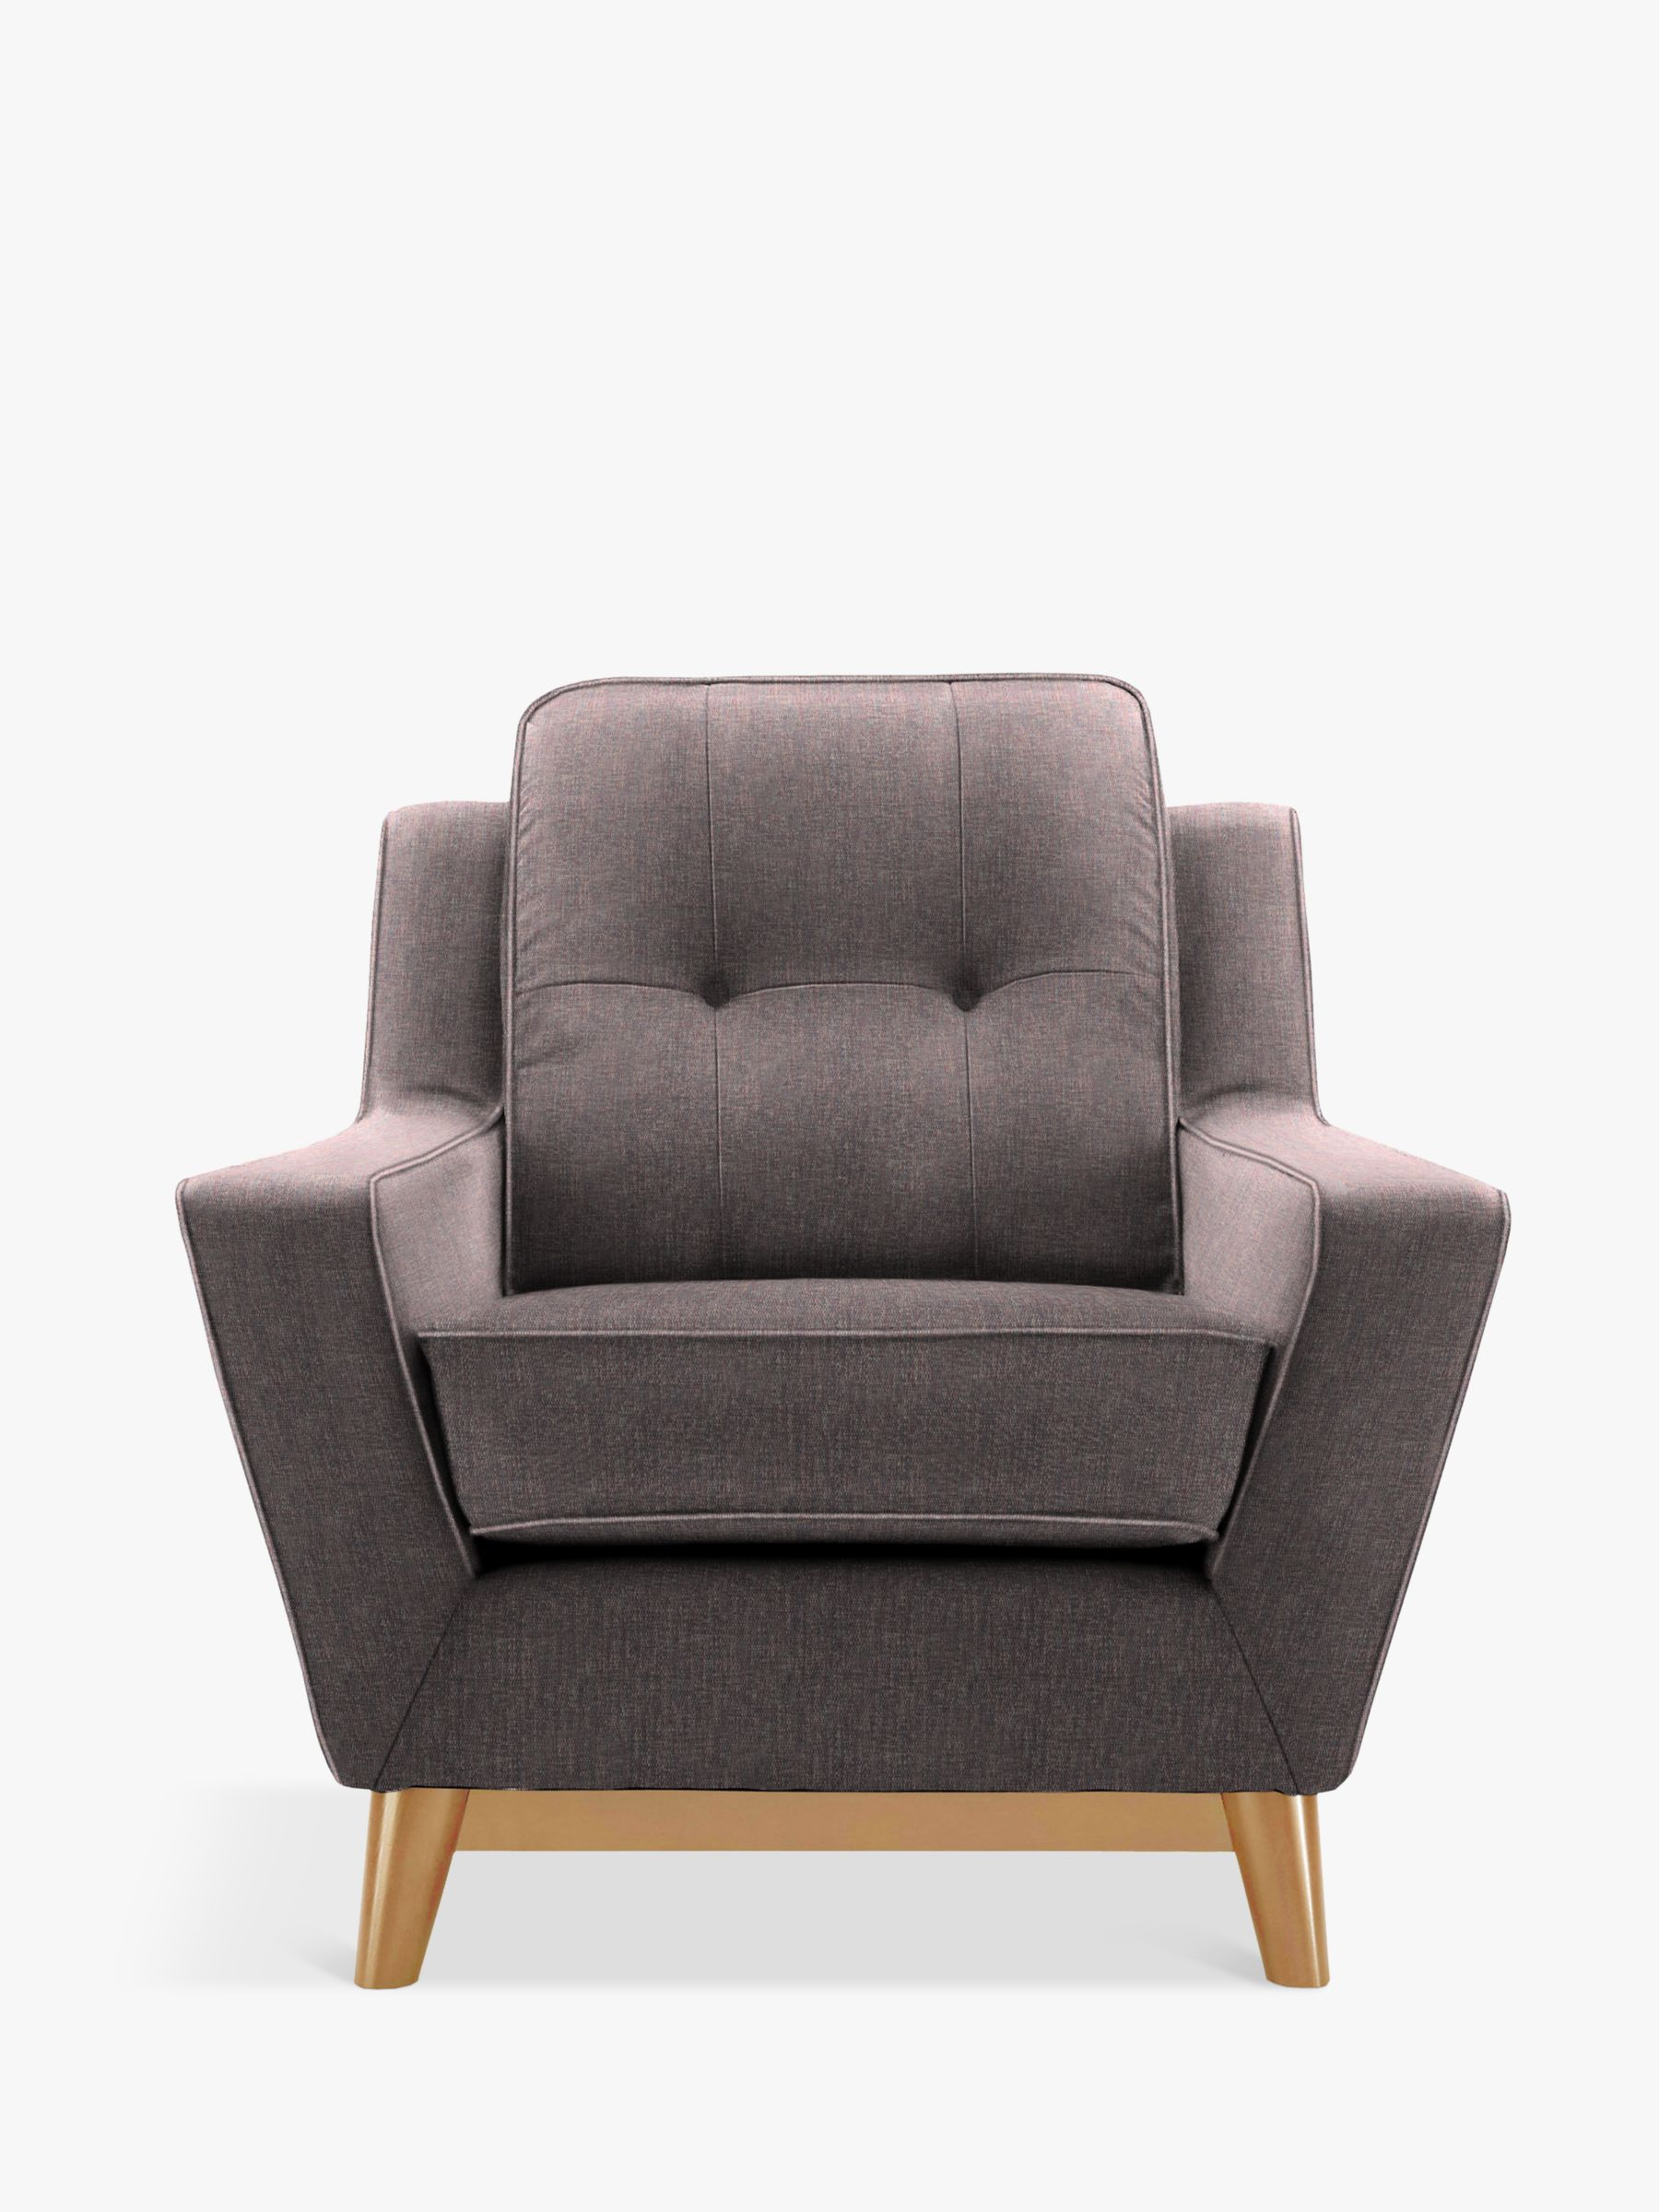 G Plan Vintage The Fifty Three Armchair, Marl Aubergine